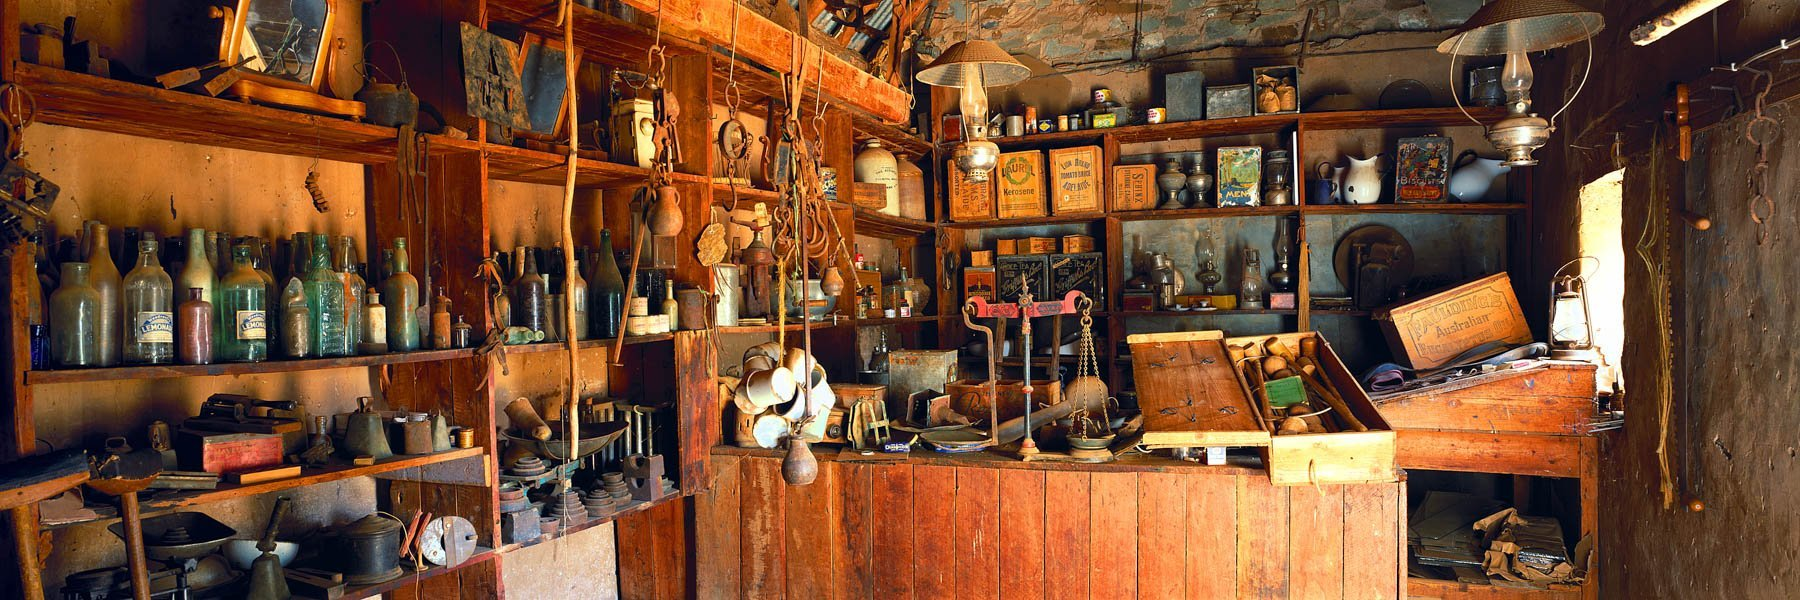 An eclectic collection of historical memorabilia in an old shed on a farm near The Flinders Ranges, SA, Australia.